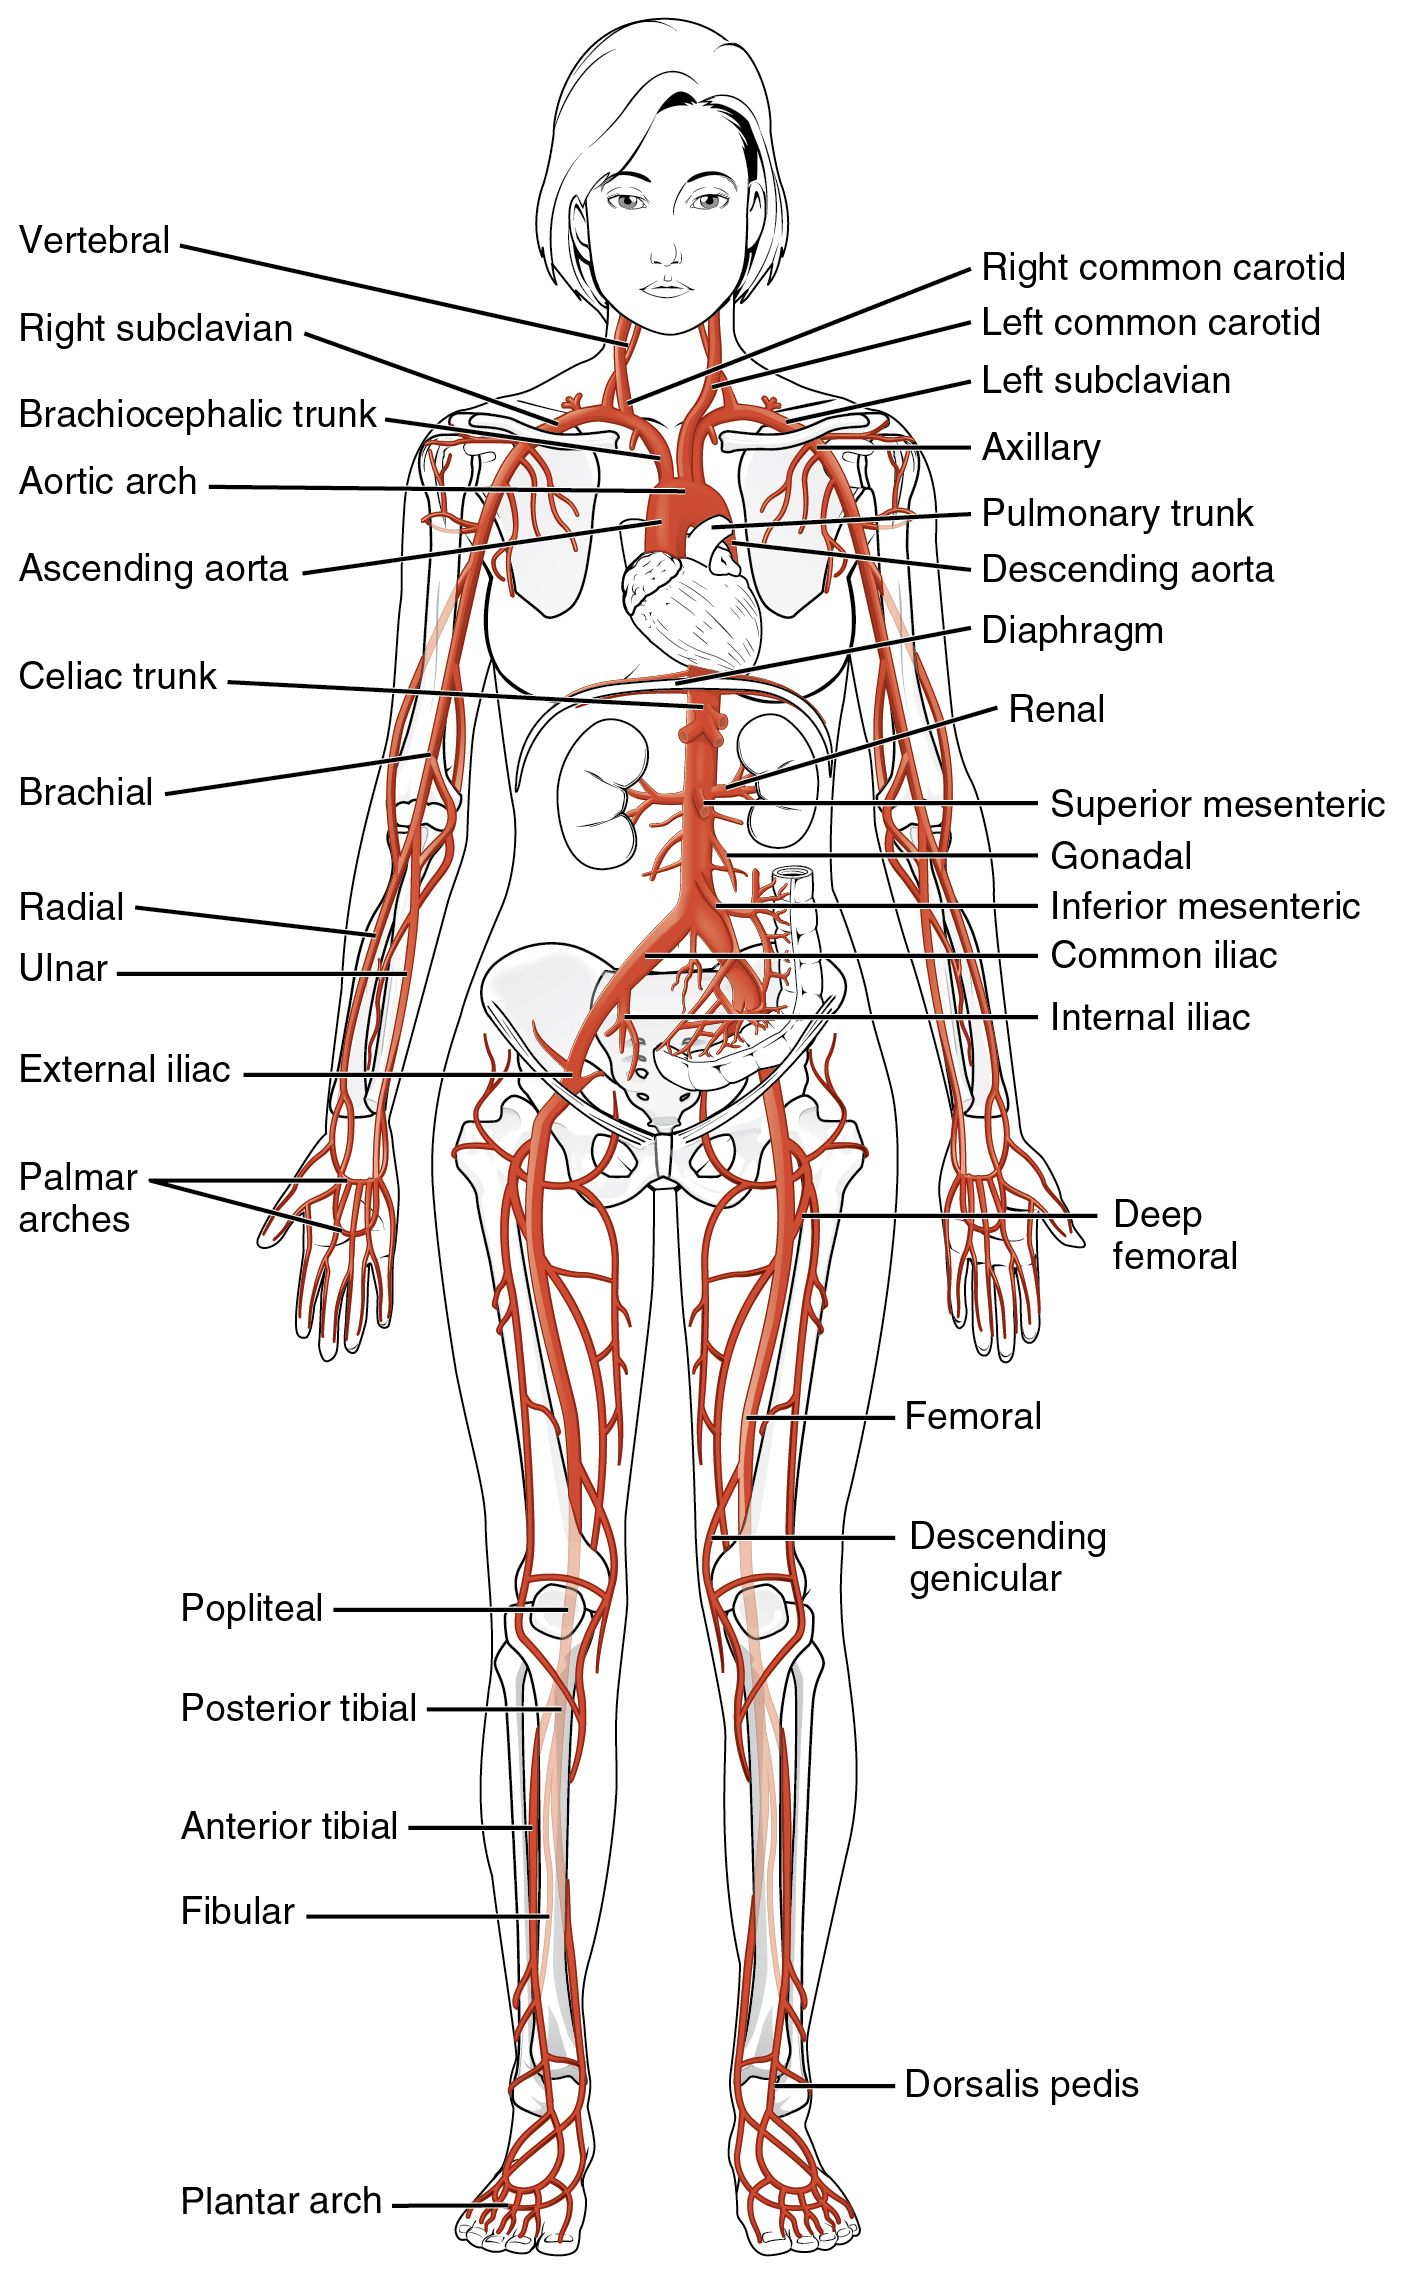 small resolution of this diagrams shows the major arteries in the human body